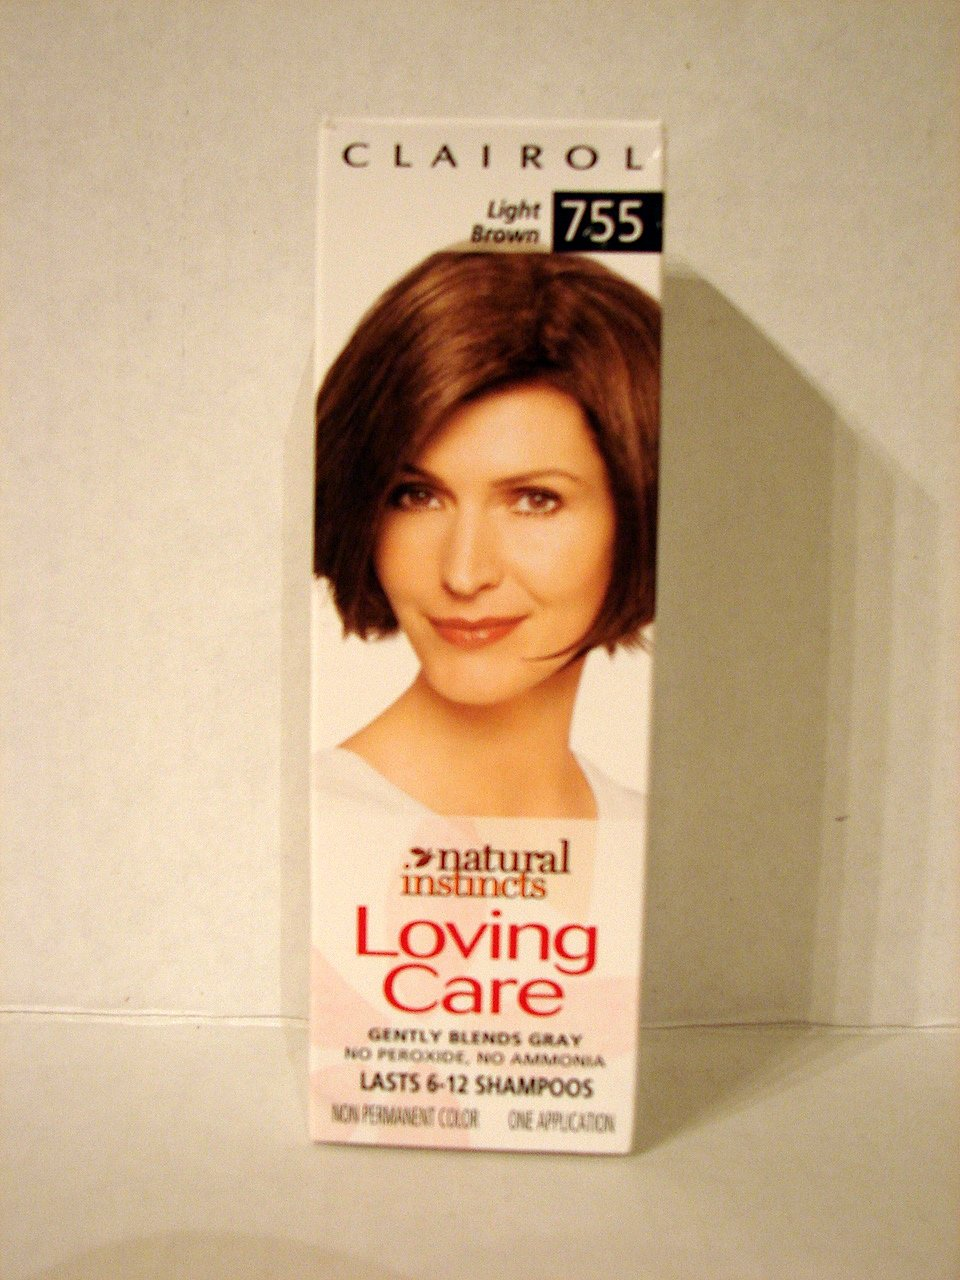 Clairol loving care, hair color creme lotion 755, Light natural brown - 3 Oz, 1 ea by Clairol